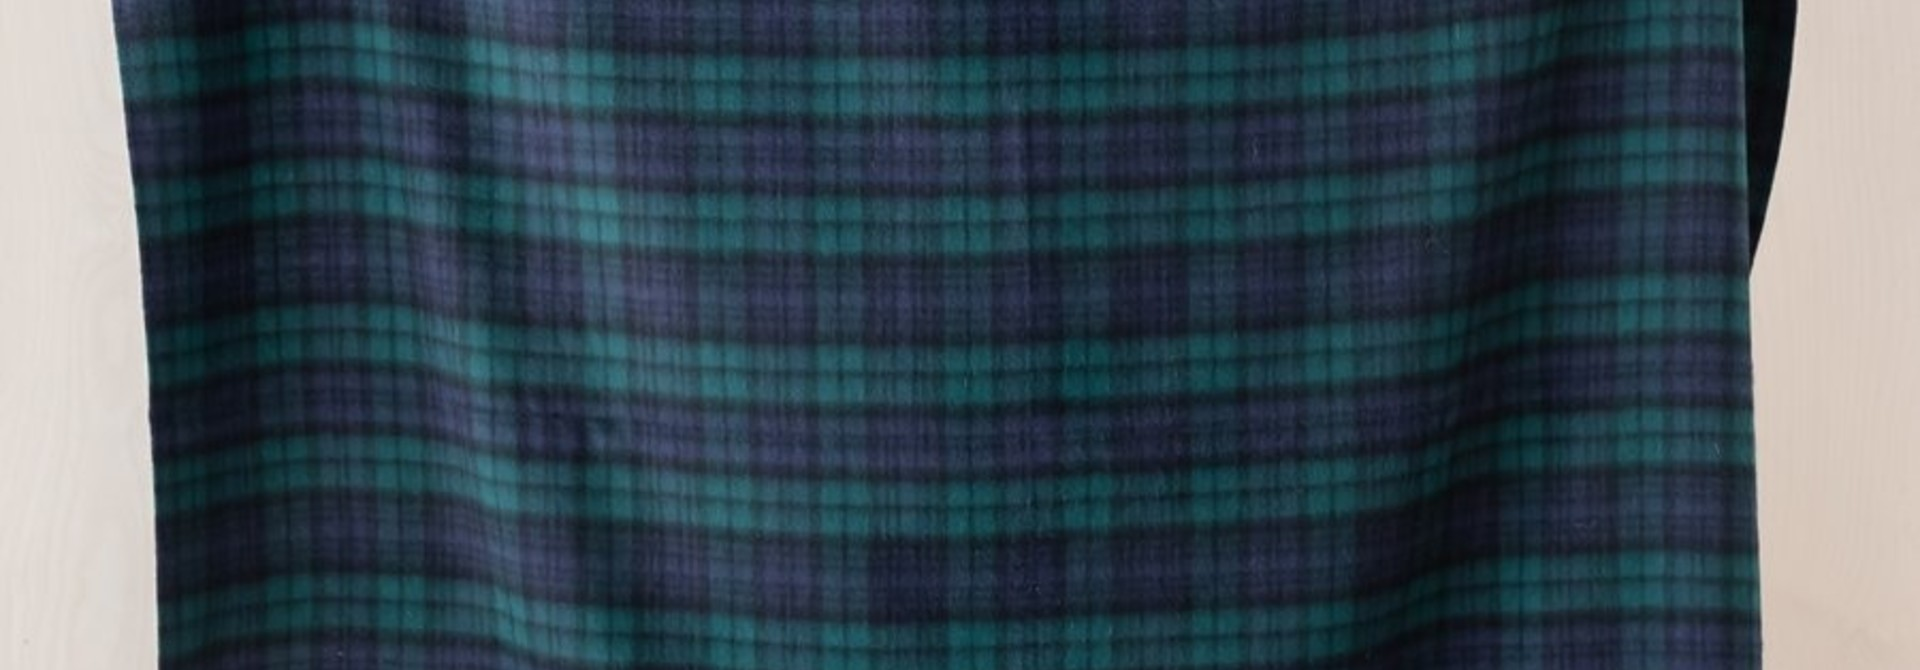 Lambswool Blanket - Black Watch Tartan